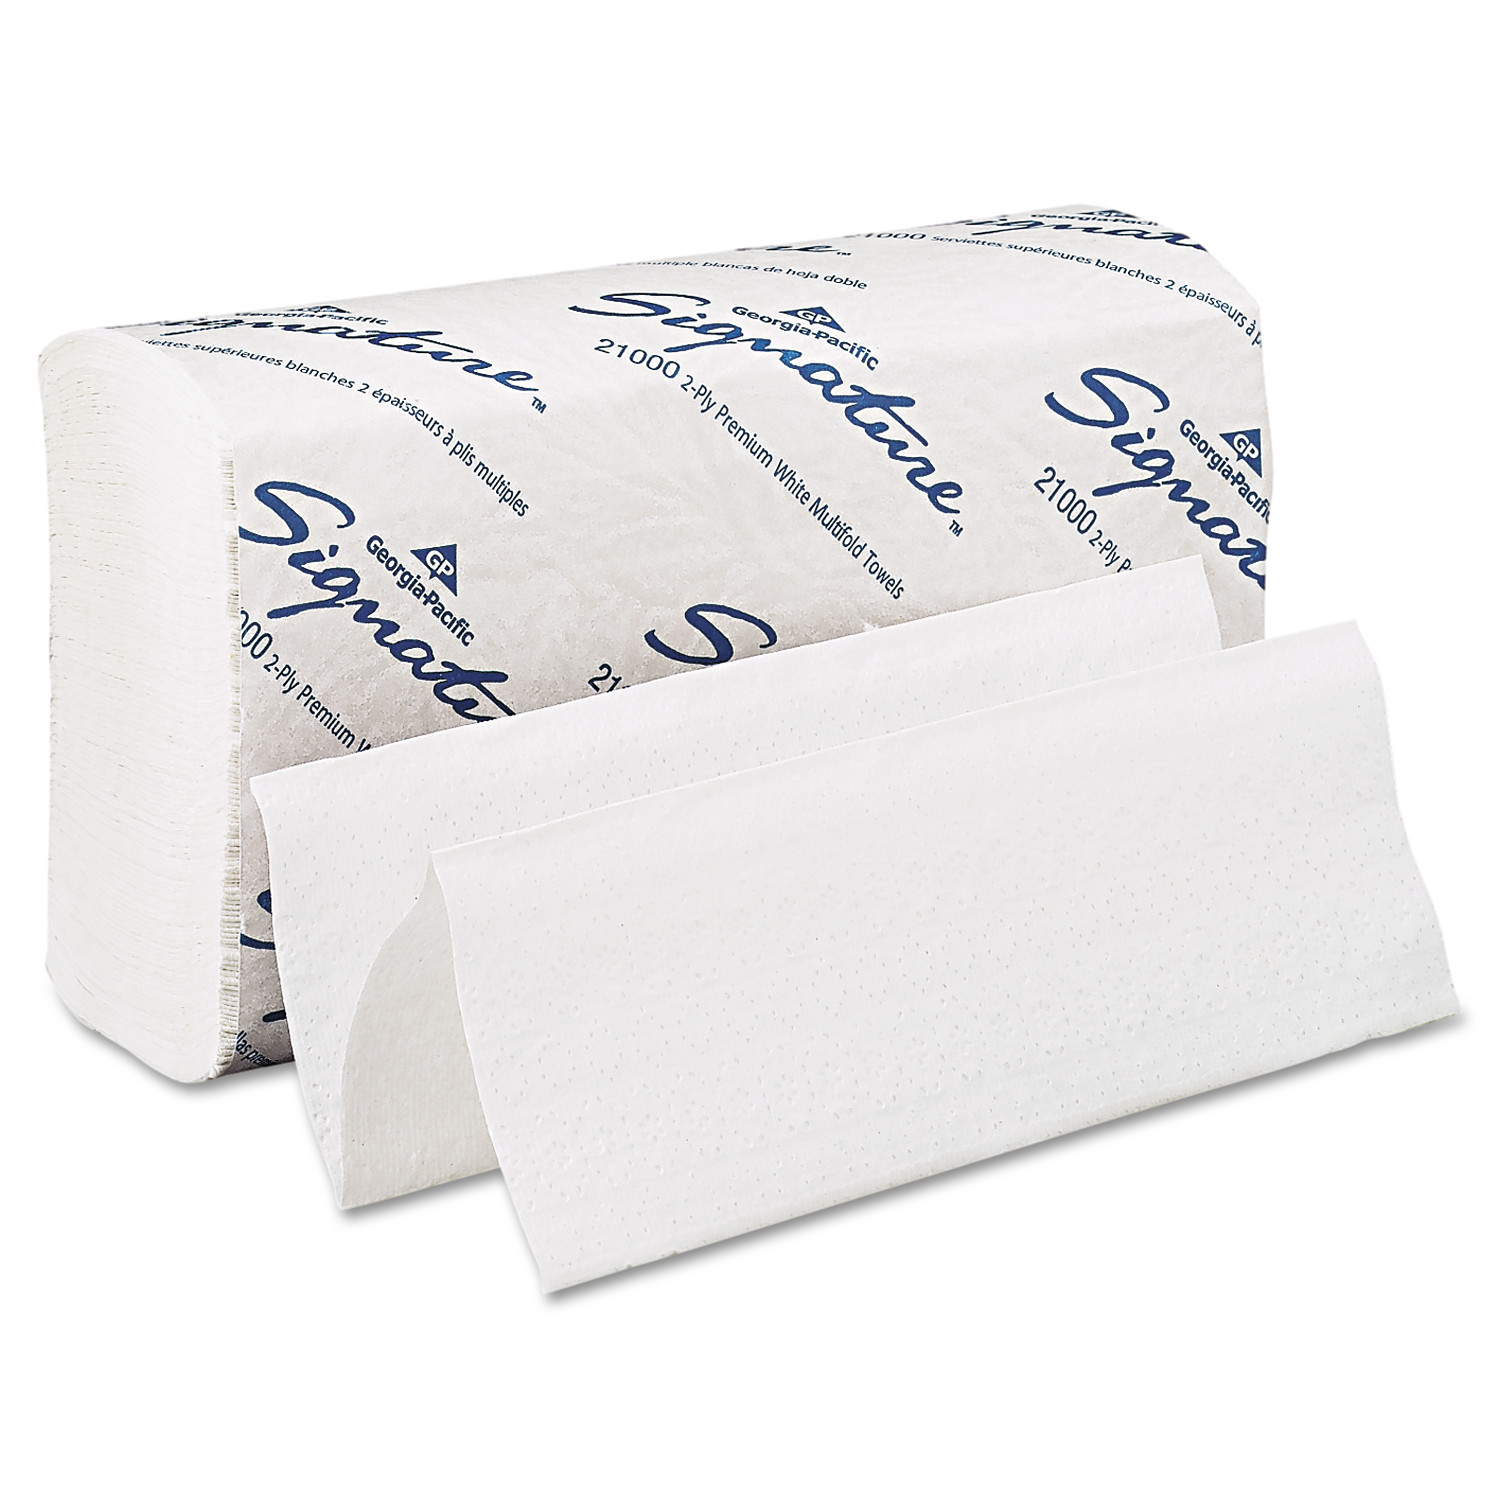 Georgia Pacific Professional Signature® White 2-Ply Premium Multifold Paper Towels, 21000, 125 Towels per Pack, 16 Packs per Case